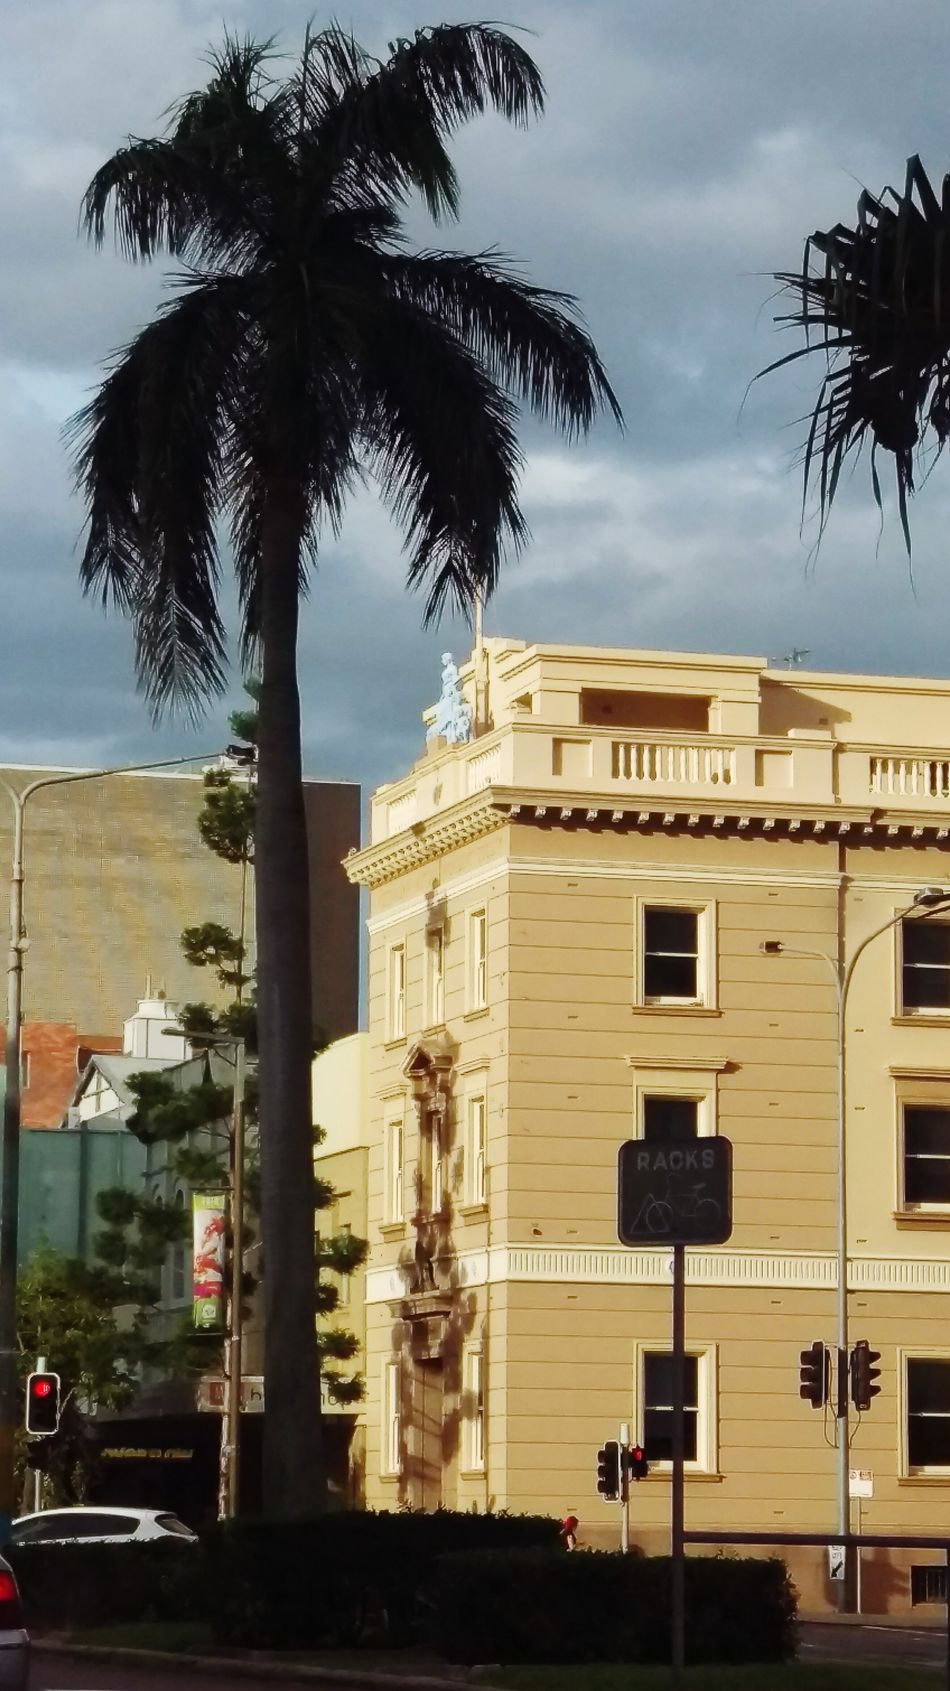 Old stone building in tropical city Architecture Tree Palm Tree Built Structure Building Exterior Façade Travel Destinations History Business Finance And Industry Outdoors No People Arts Culture And Entertainment City Vacations Sky Politics And Government Cityscape Day